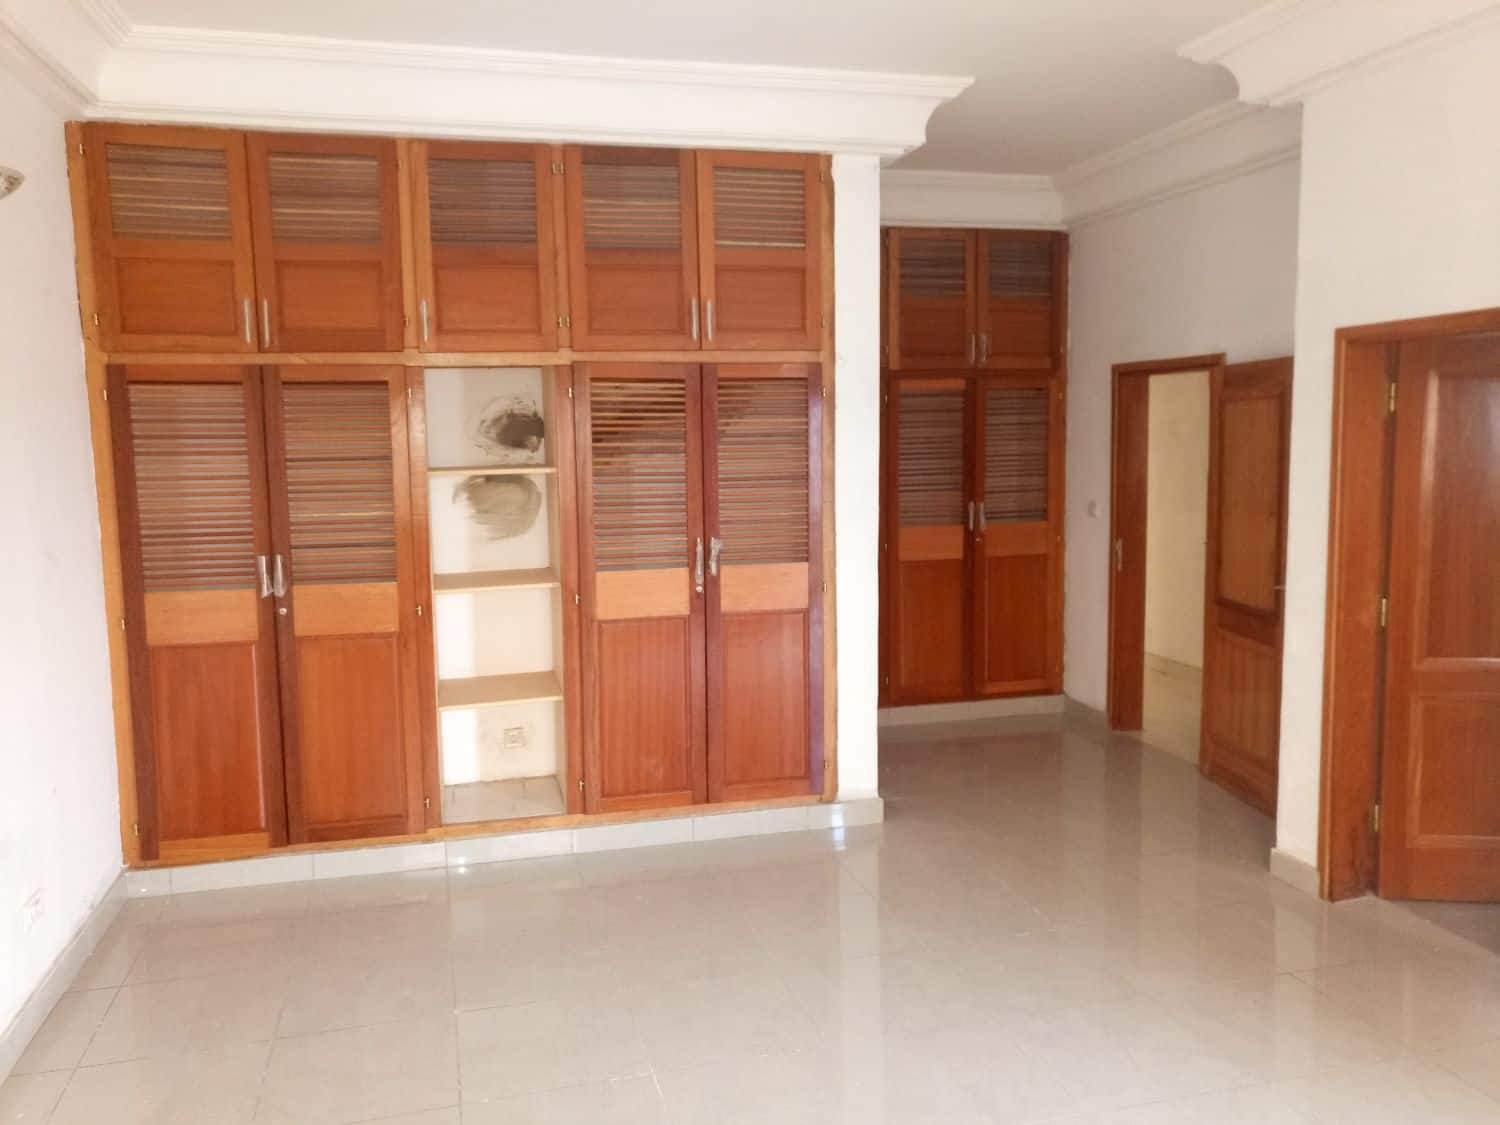 Chambre Moderne Logpom Apartment To Rent At Douala Ndogbong 3 Bedrooms 400 000